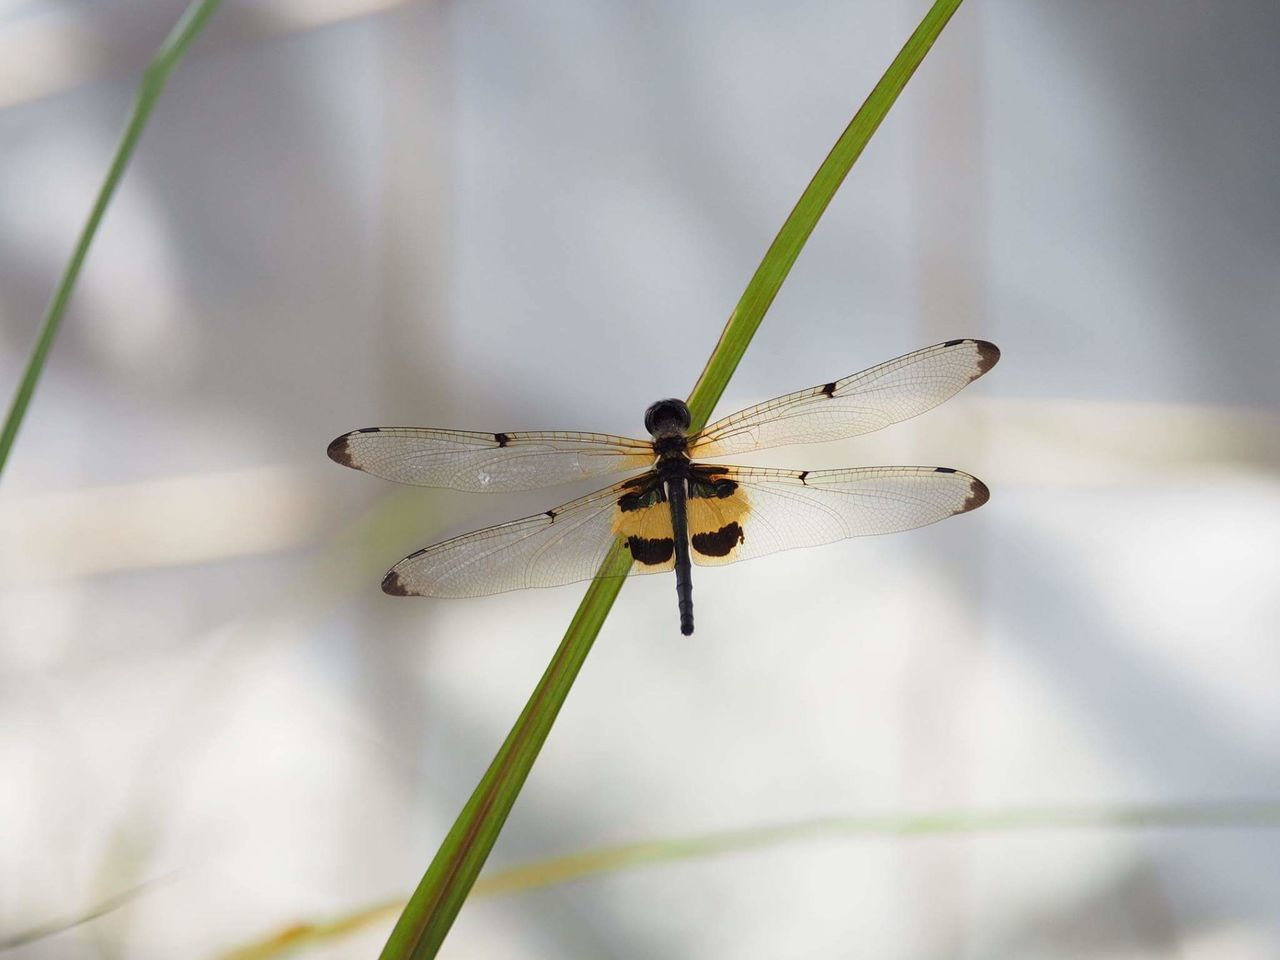 Insect Dragonfly Dragonfly_of_the_day Dragonfly Photograohy Dragonfly💛 Dragonfly Nature Insects Dragon Fly Dragonflies Dragonfly Like Bees Bee Fly Insect Photography Insect Paparazzi Insects Collection Nature Animal Wing Outdoors